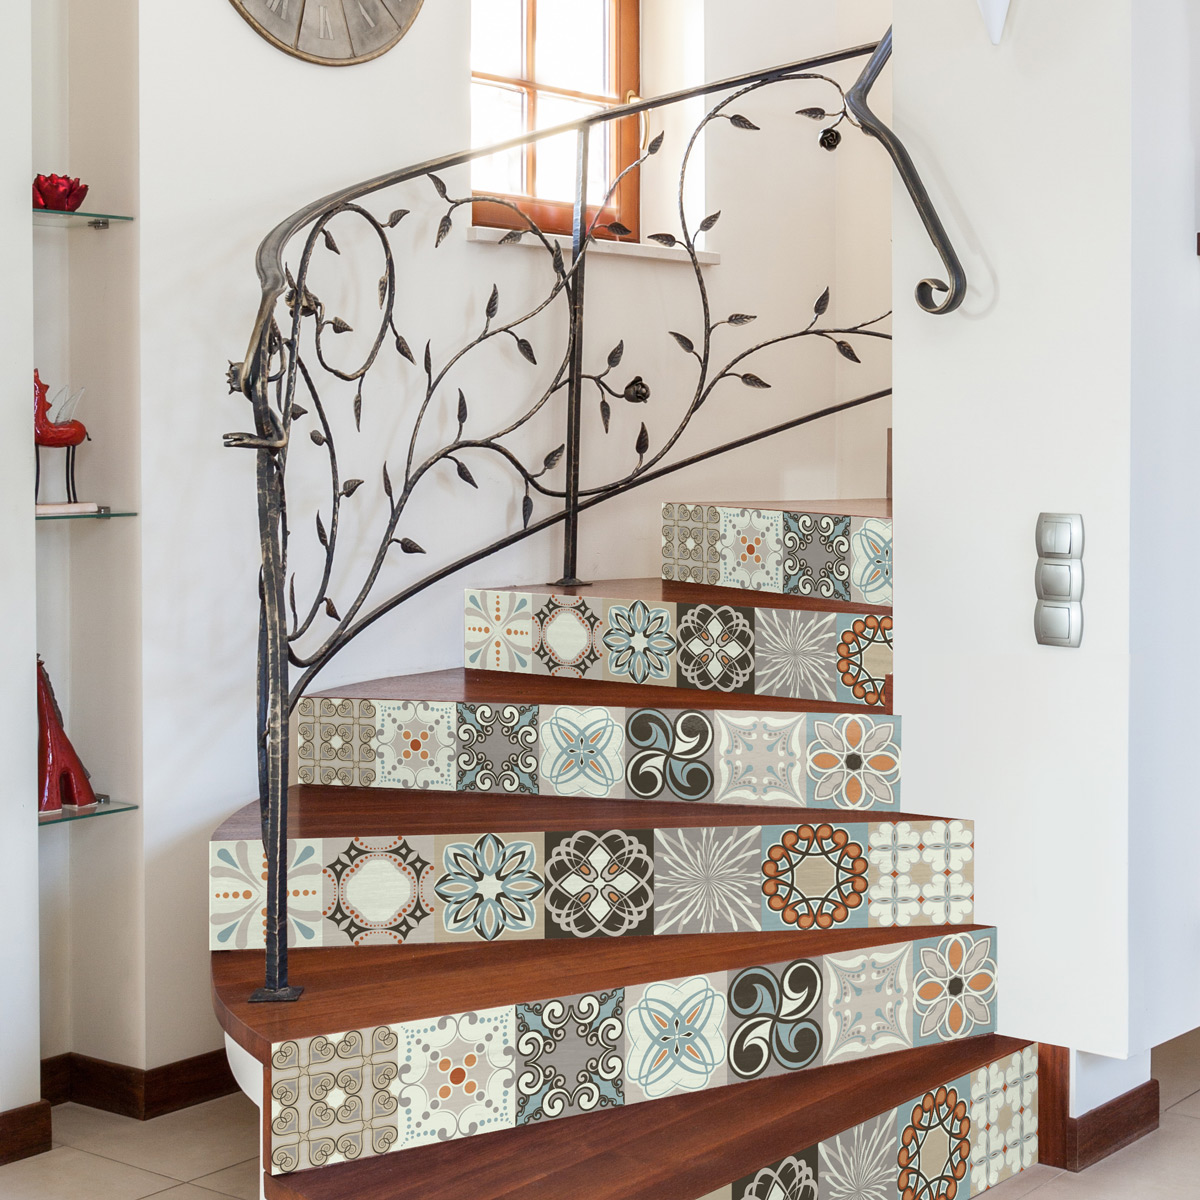 stickers escalier carreaux de ciment esteban x 2 ambiance sticker col stairs rv a0100 stickers. Black Bedroom Furniture Sets. Home Design Ideas